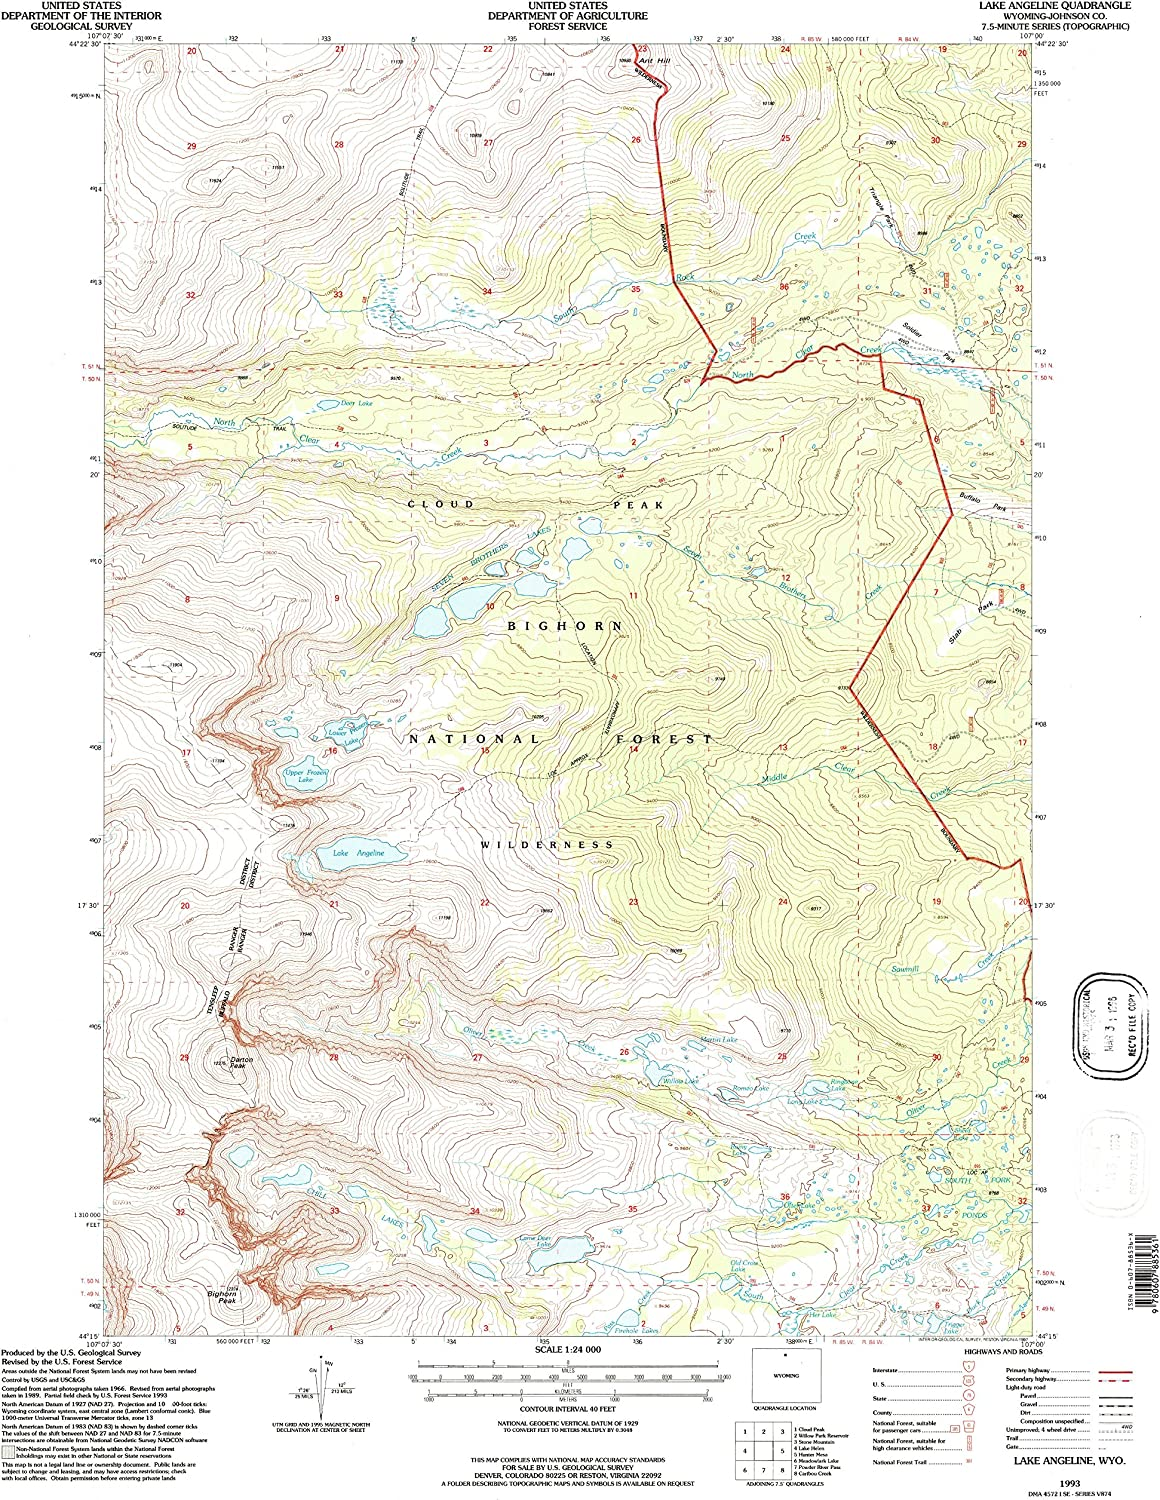 YellowMaps Lake Angeline WY topo Be New mail order super welcome map 7.5 X 1:24000 M Scale